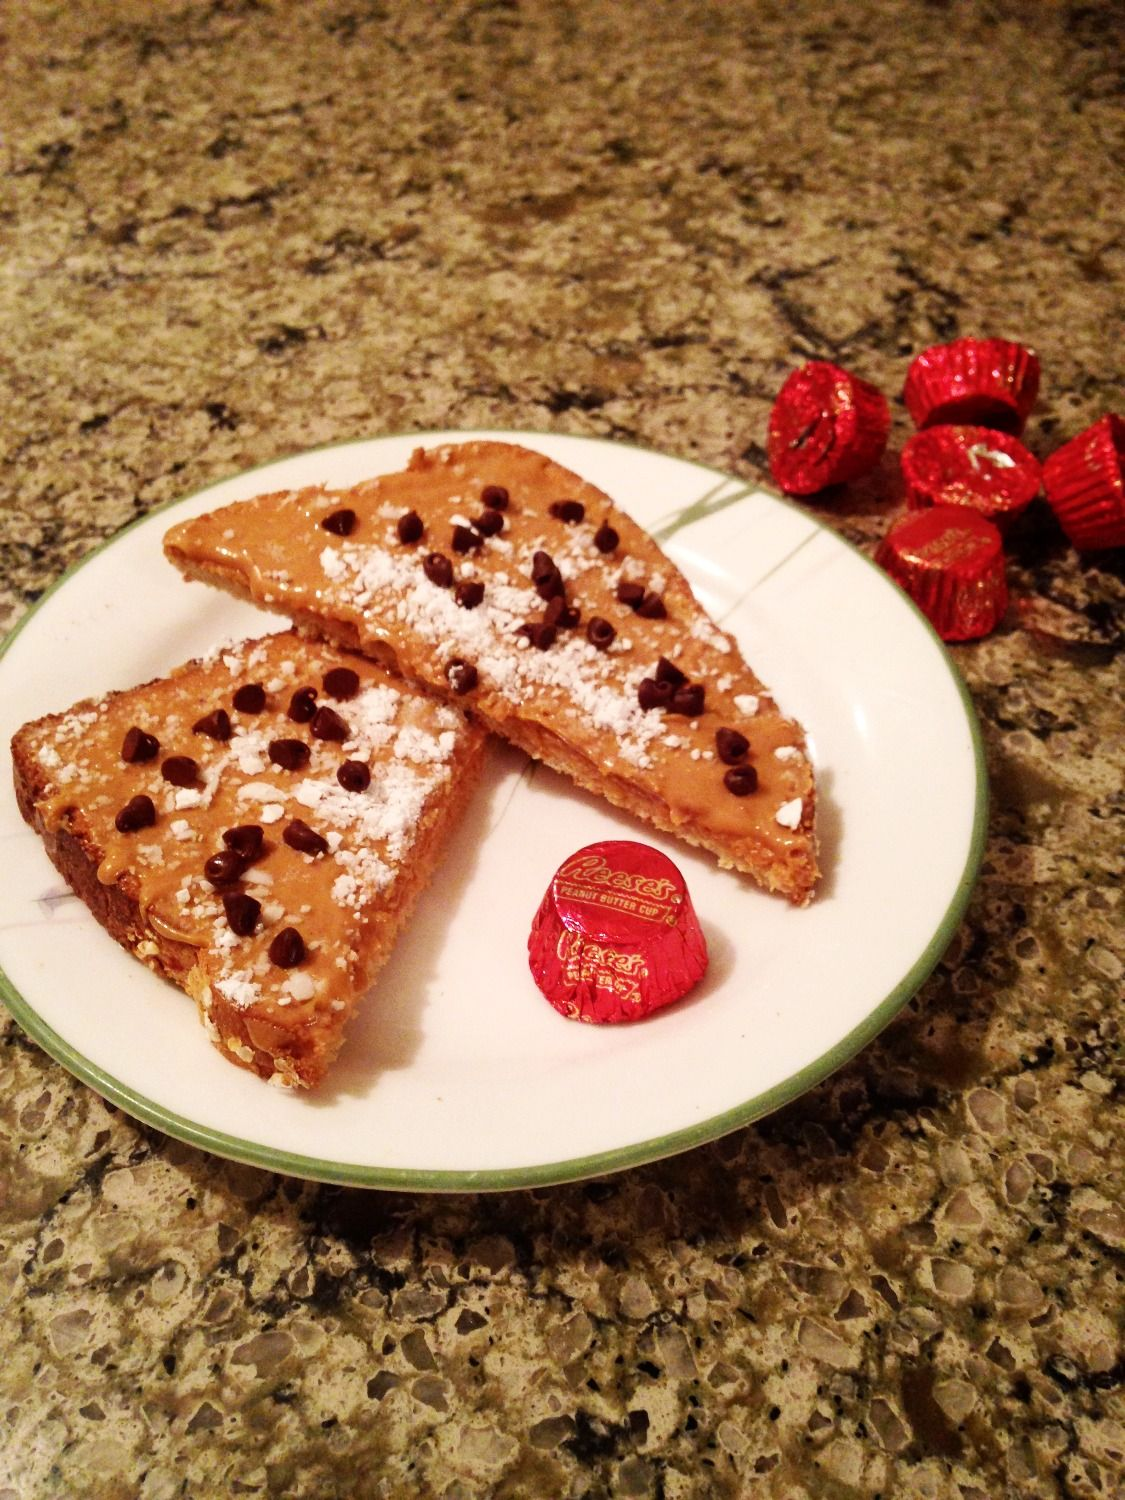 Reese's Toast: A yummy and more nutritous alternative!